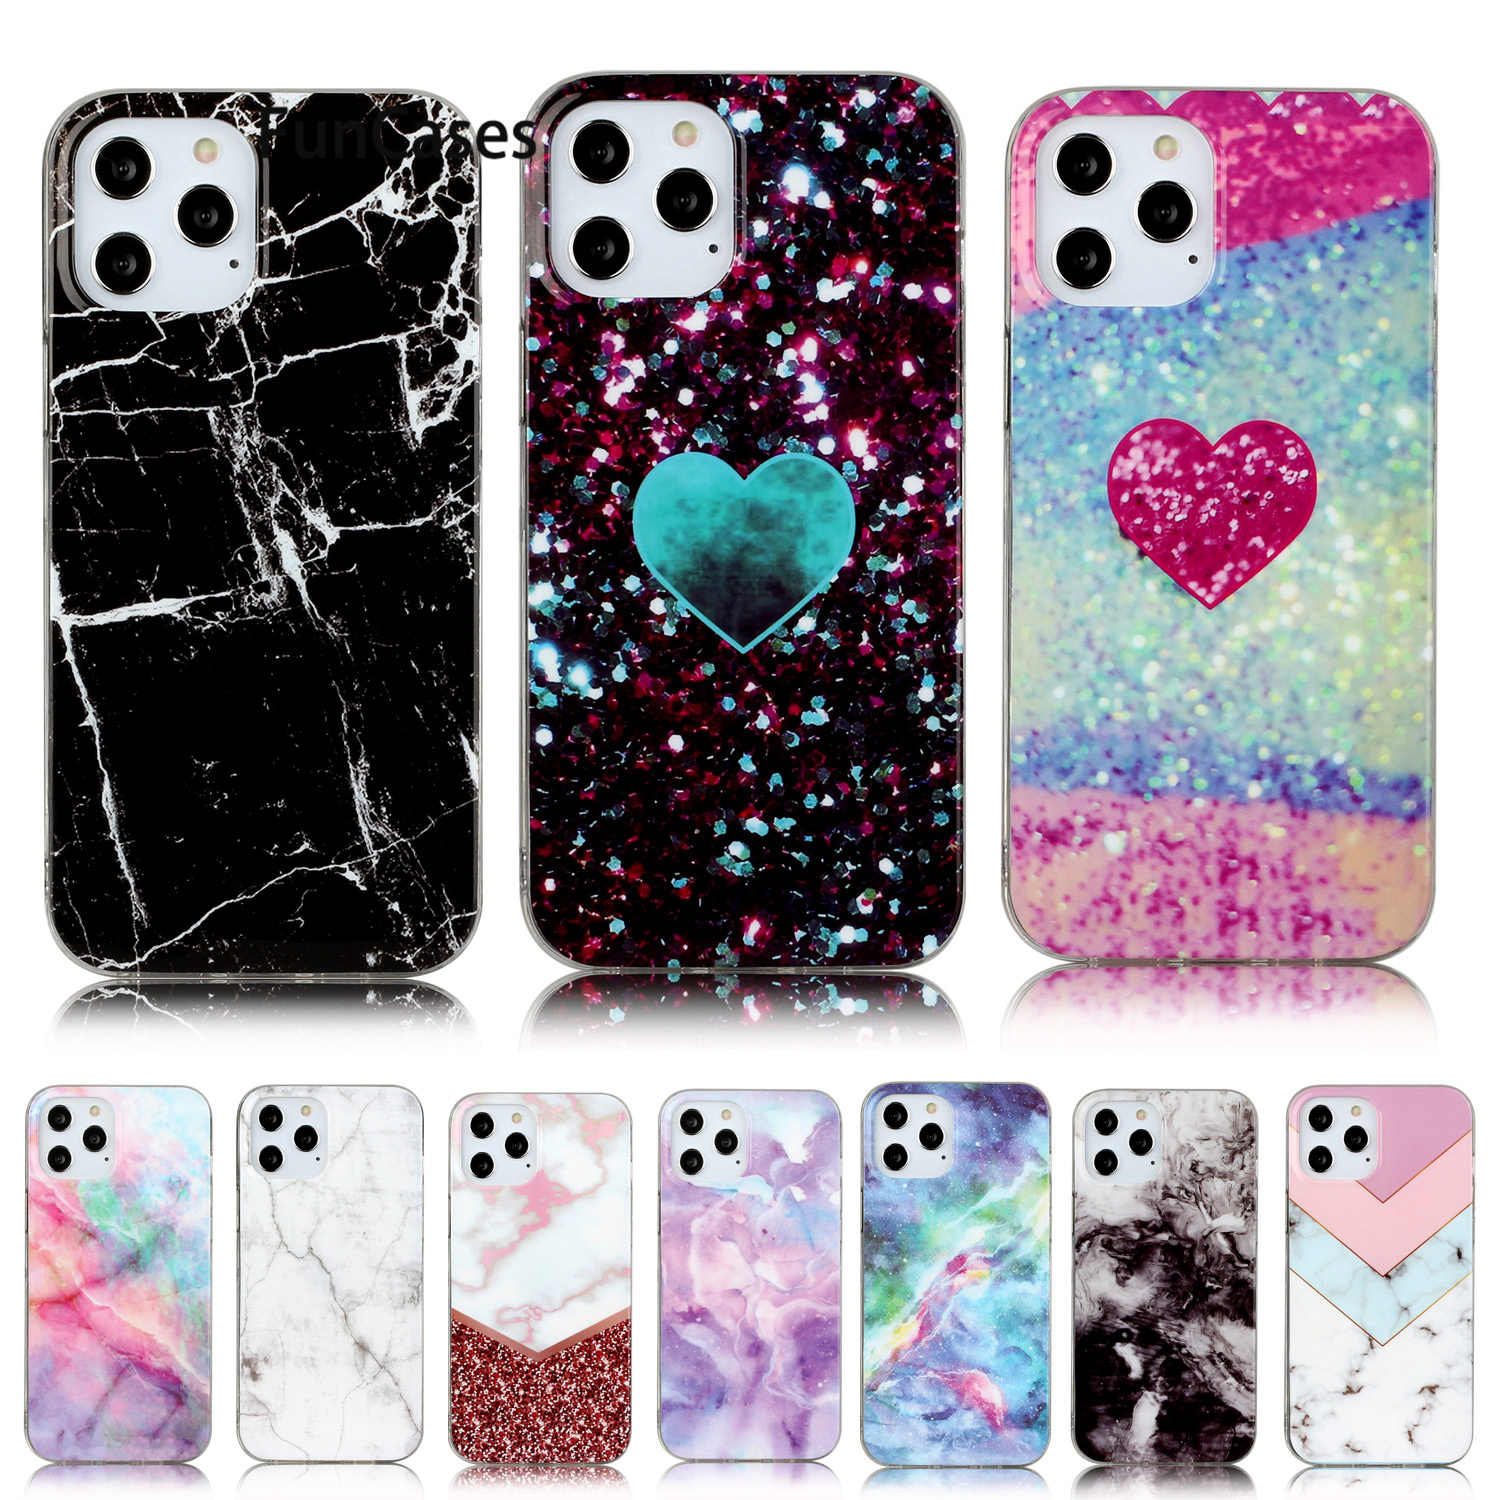 Starry Sky Soft Silicone Shell For iPhone 11 Pro Max Pattern Cases Portable Apple iPhone coque 11 Pro Max 12 Mini Phone Cover